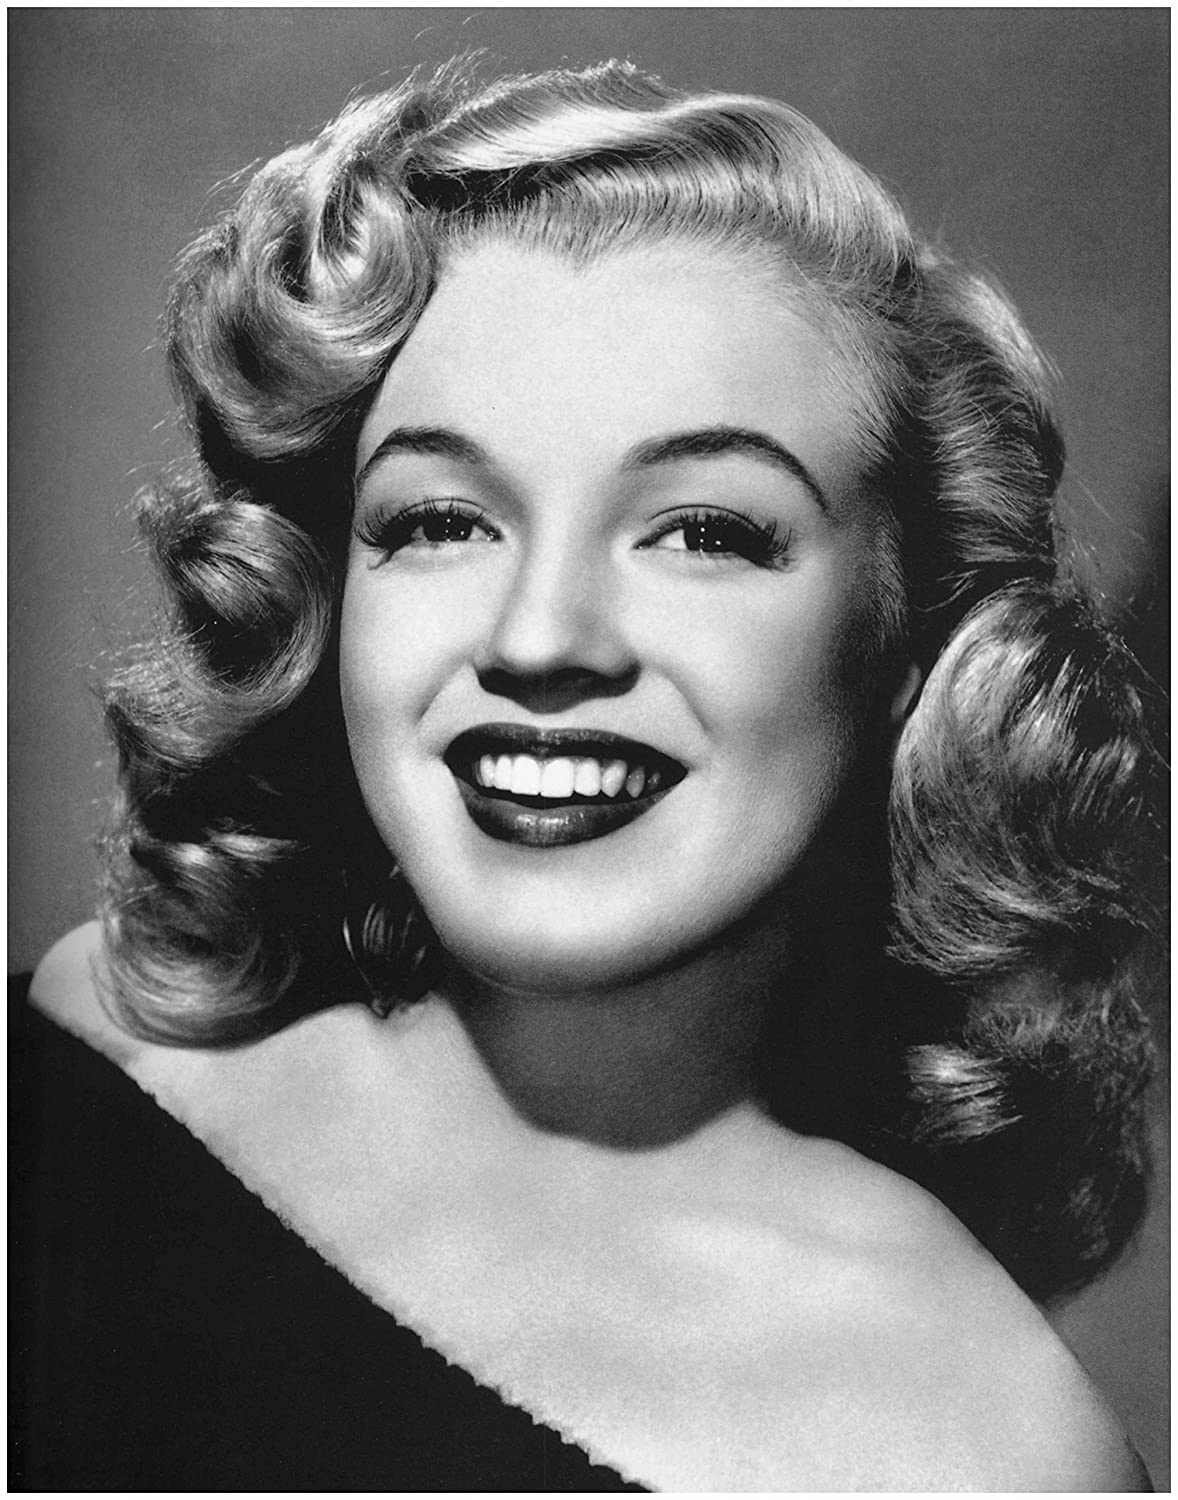 Amazon com artdash photo art print by famous marilyn monroe portrait black and white photograph 8x10 print posters prints